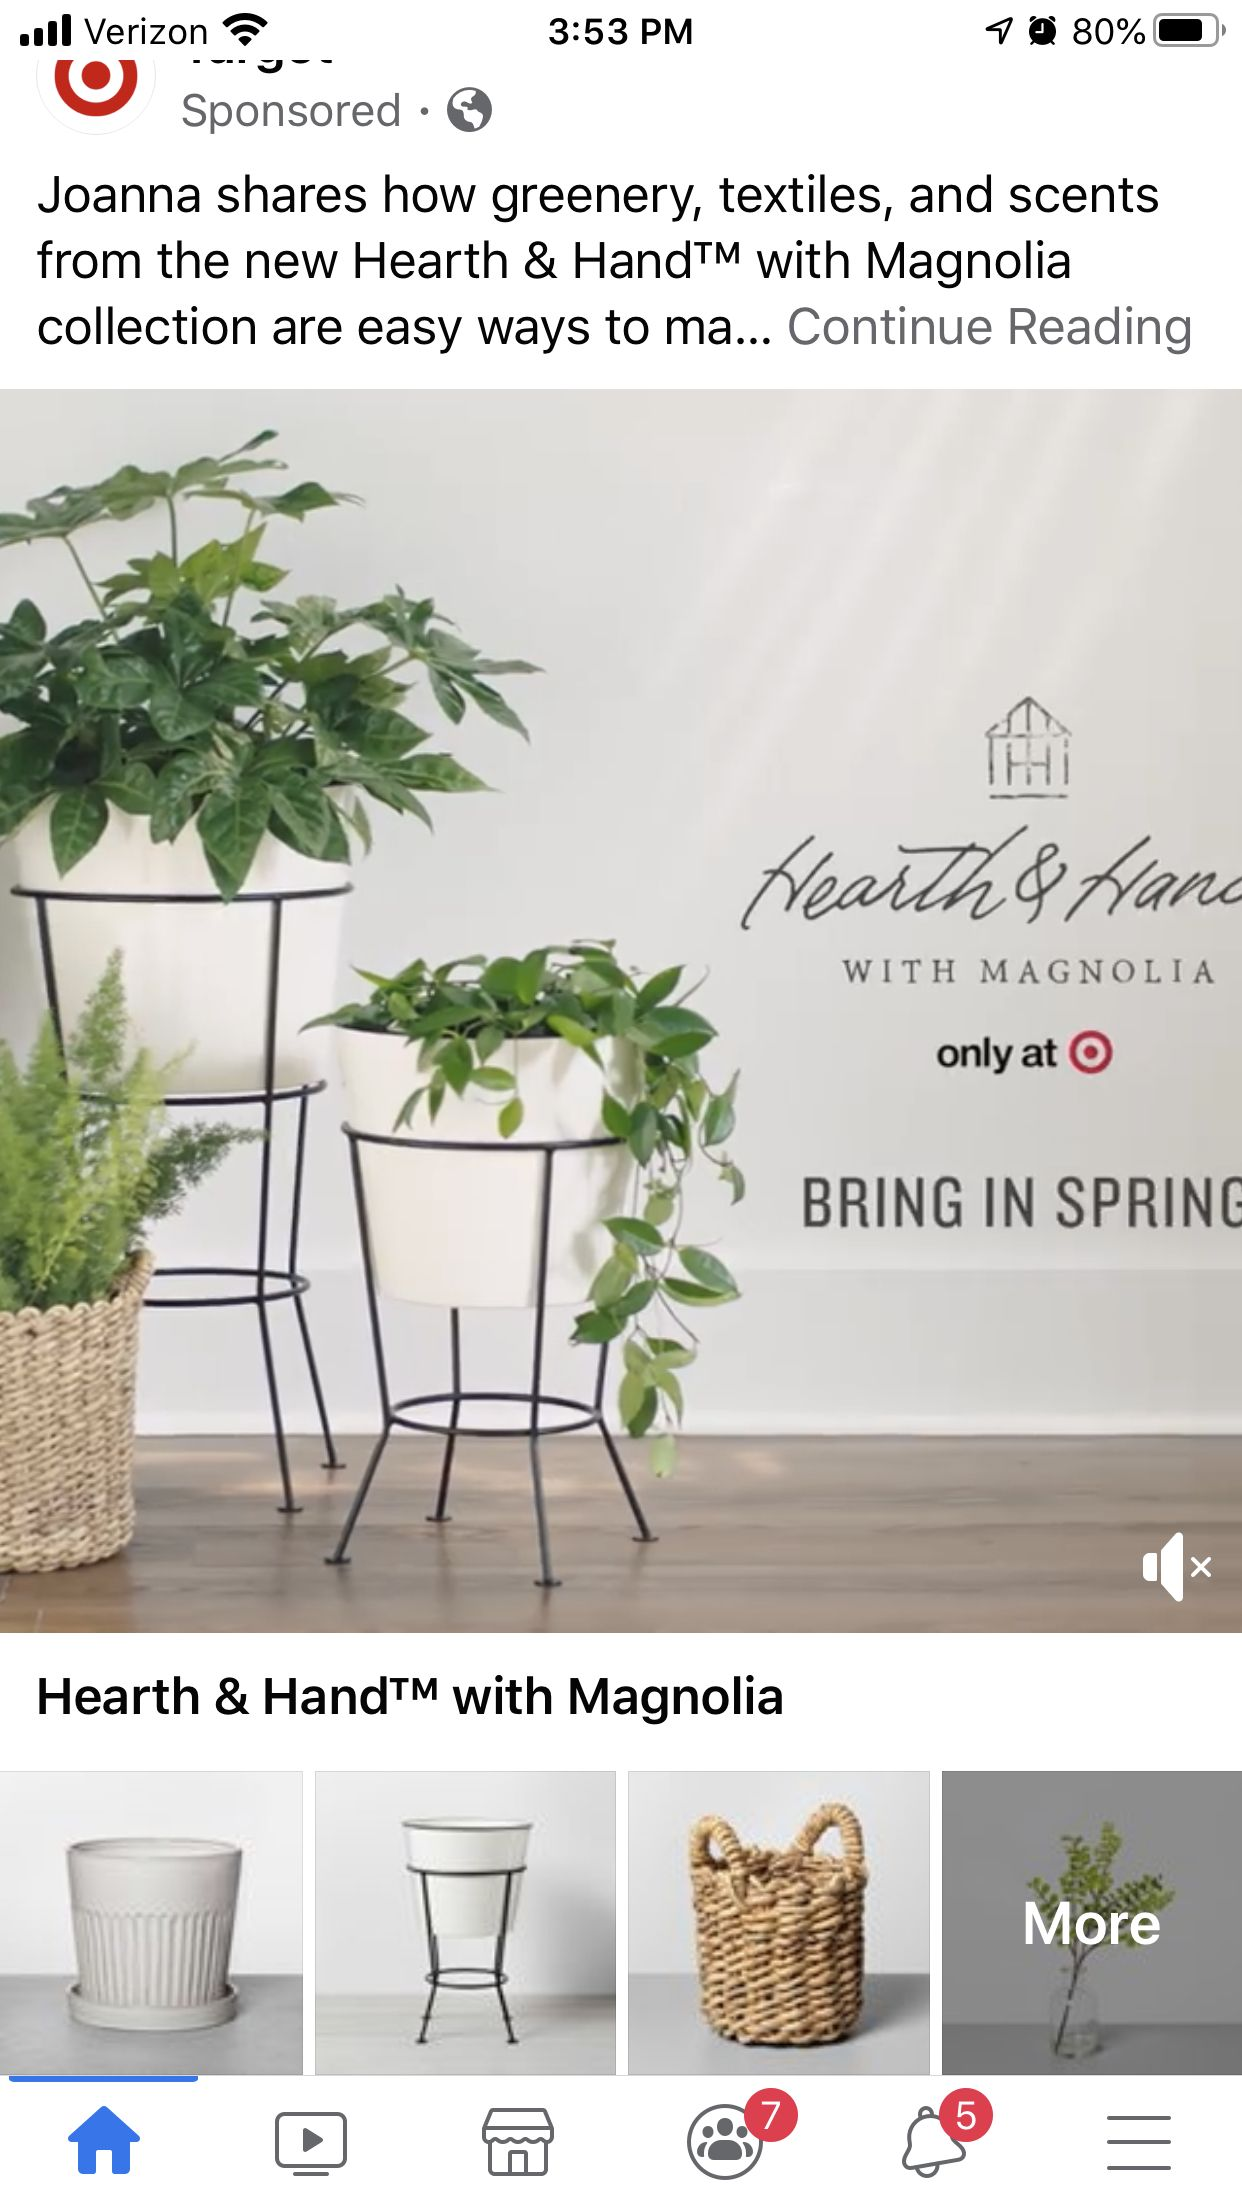 Pin By Beverly Bernst On Castlebrook Living Room In 2020 Magnolia Collection Hearth Greenery